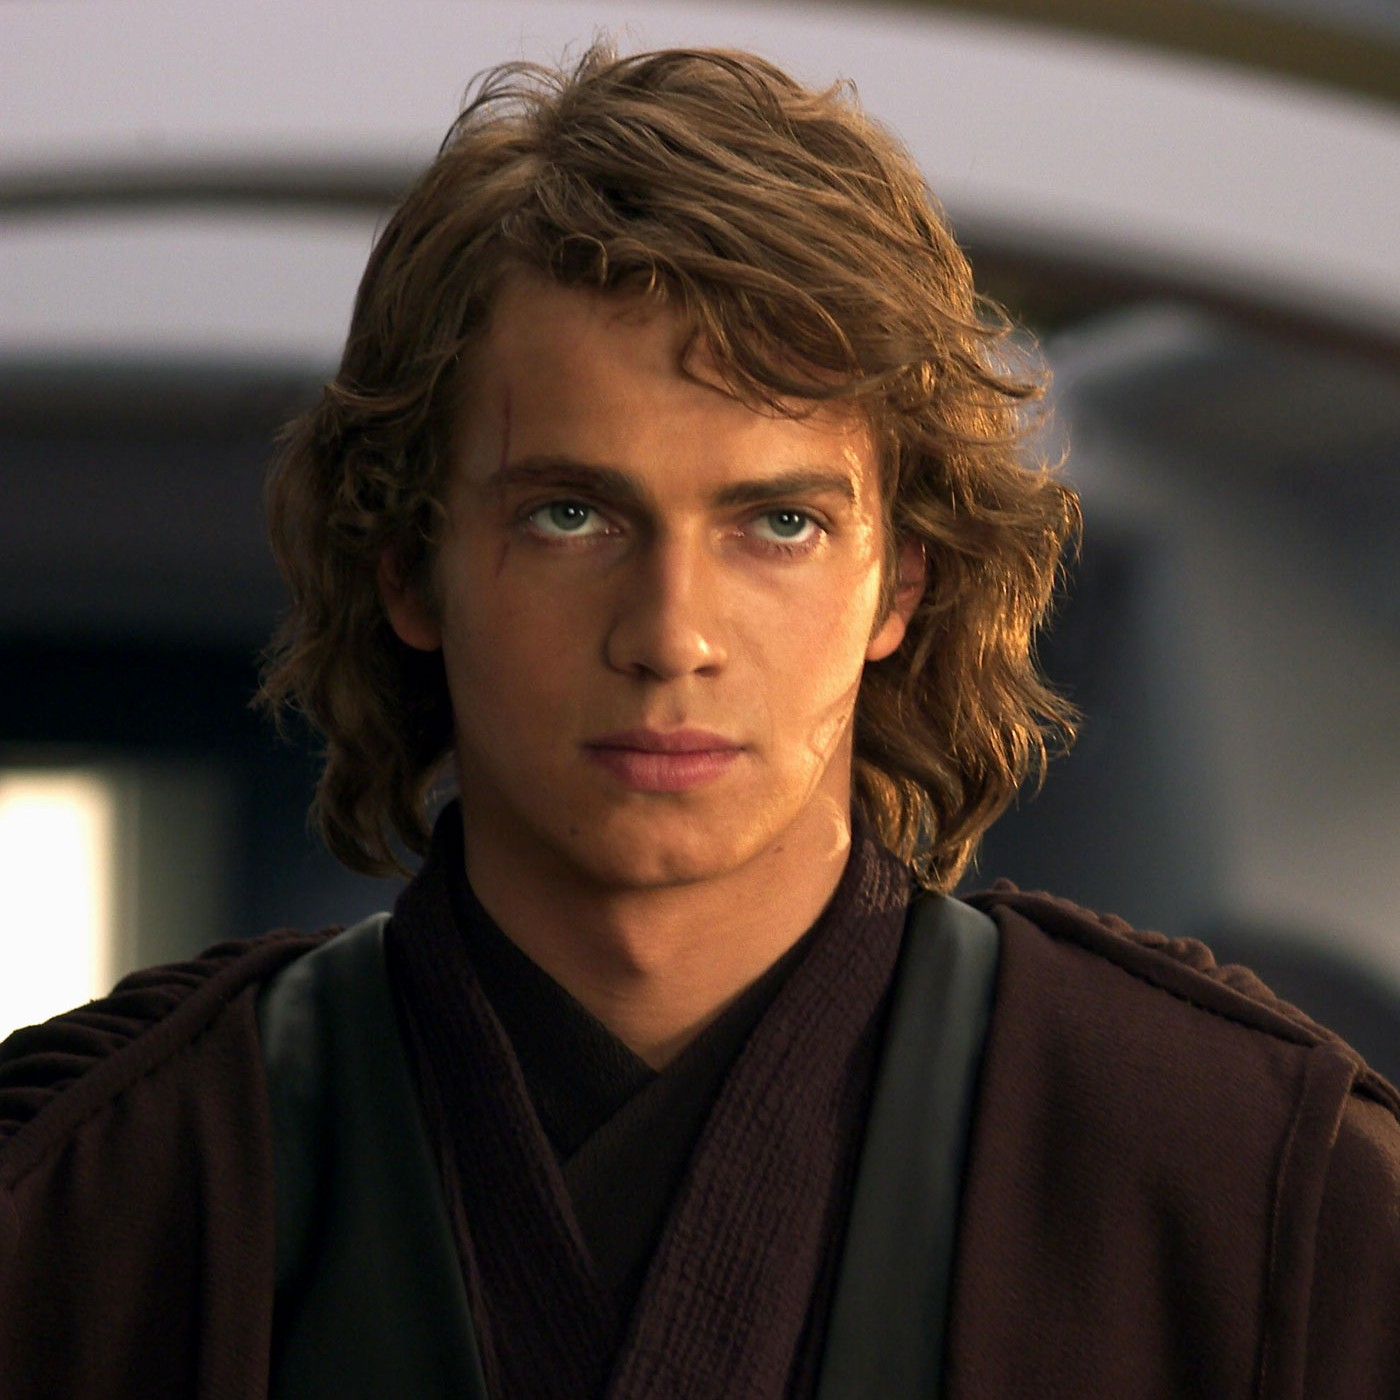 anakin skywalker wavy hair